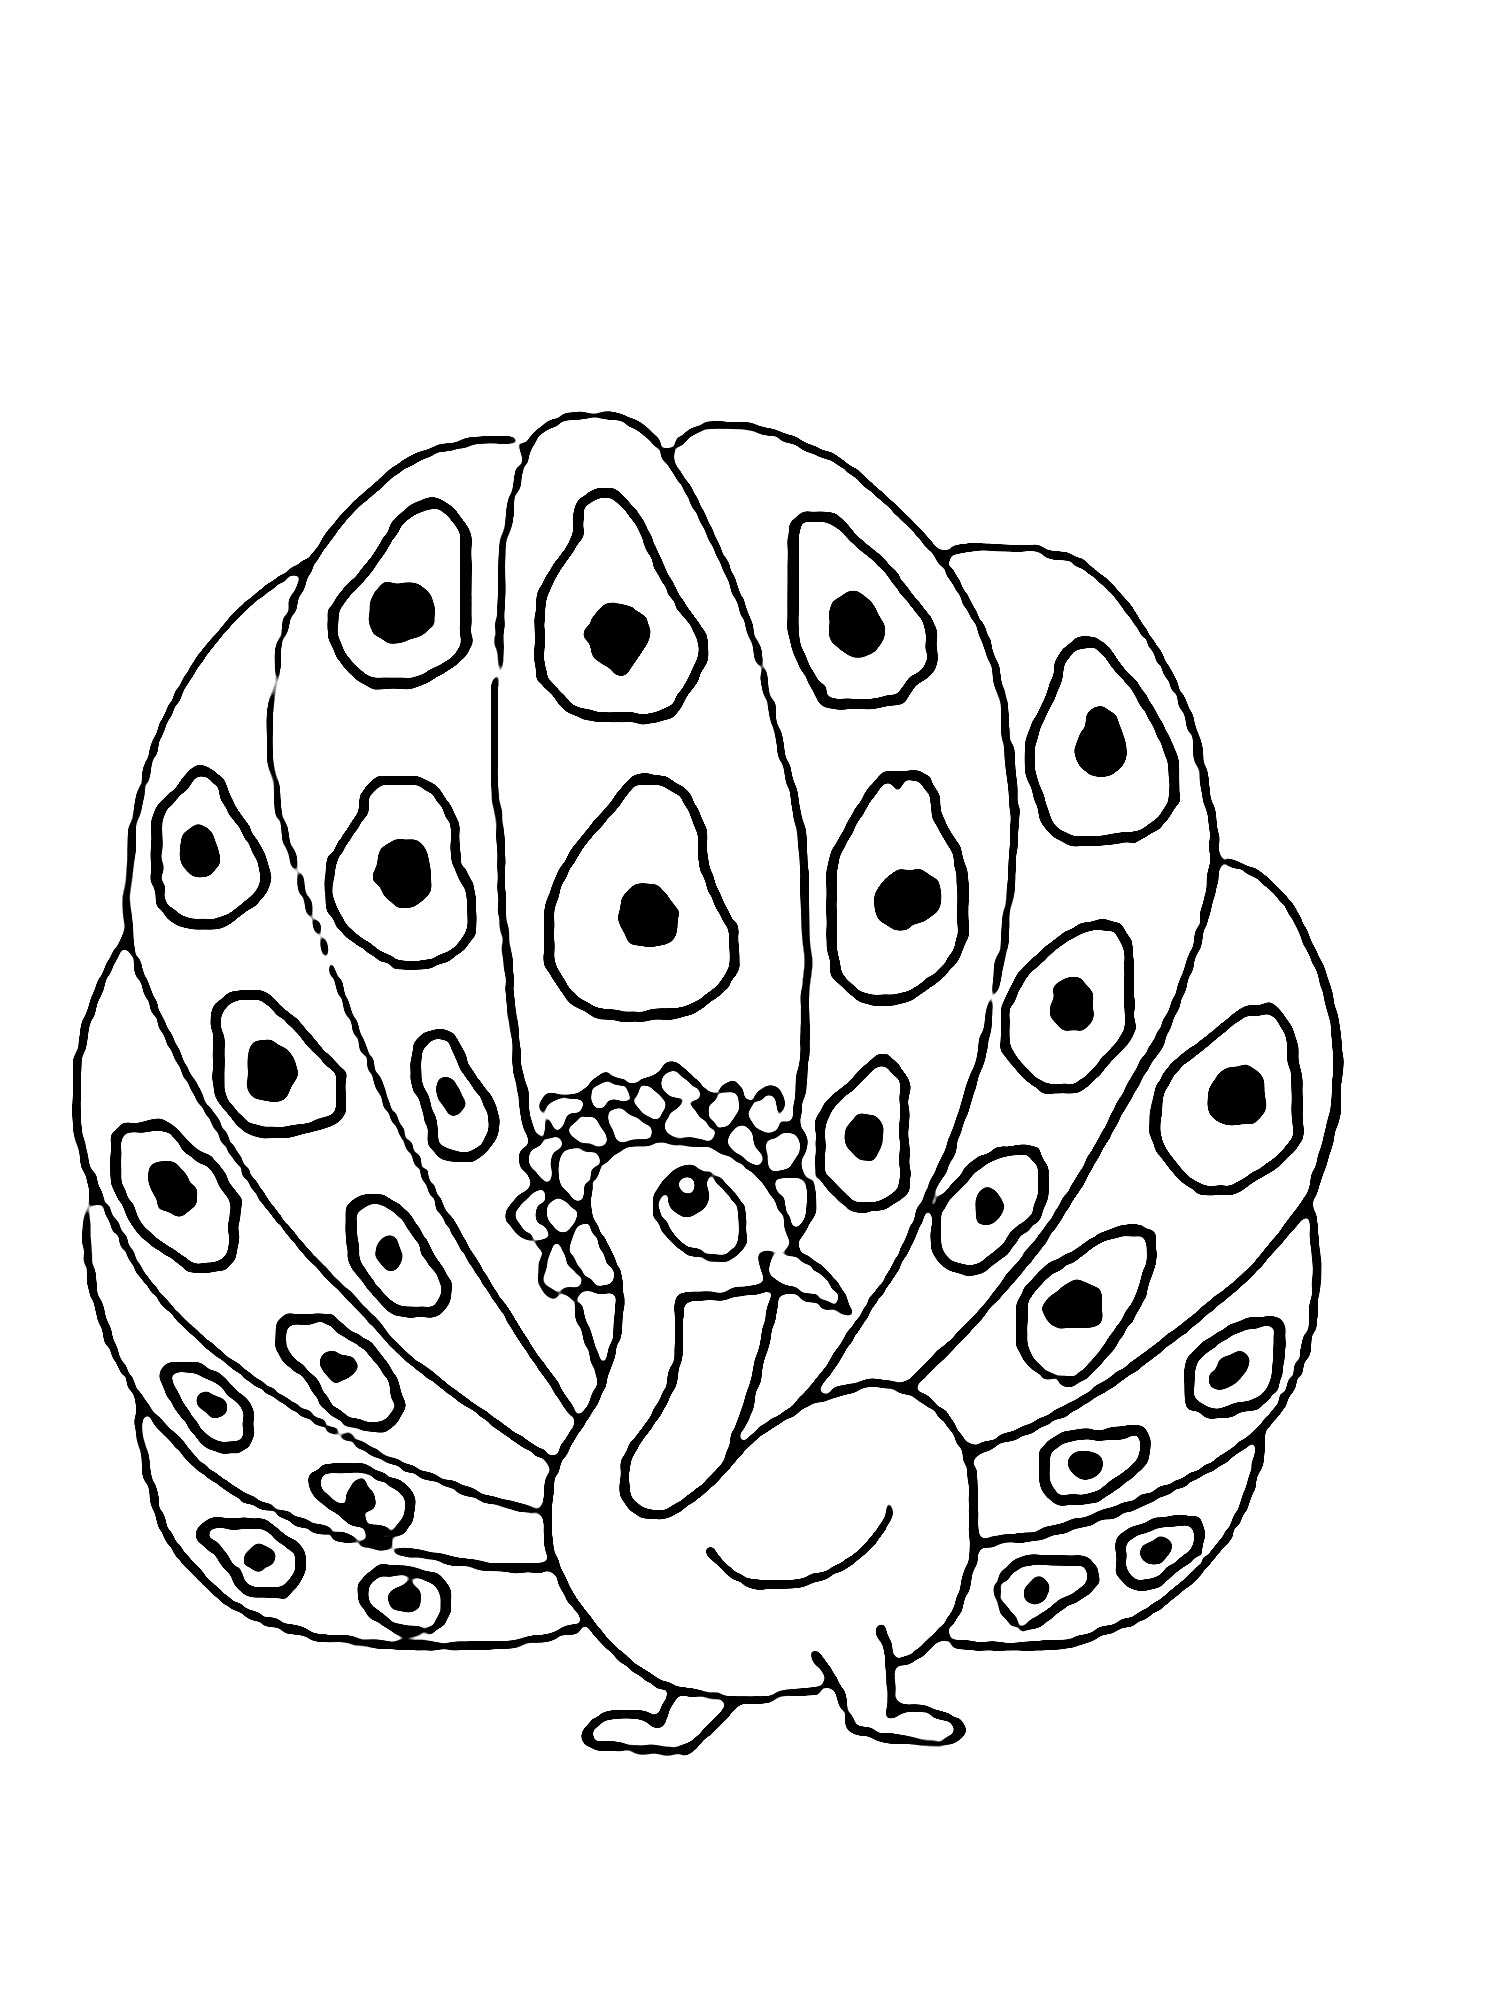 Peacocks To Download For Free Peacocks Kids Coloring Pages